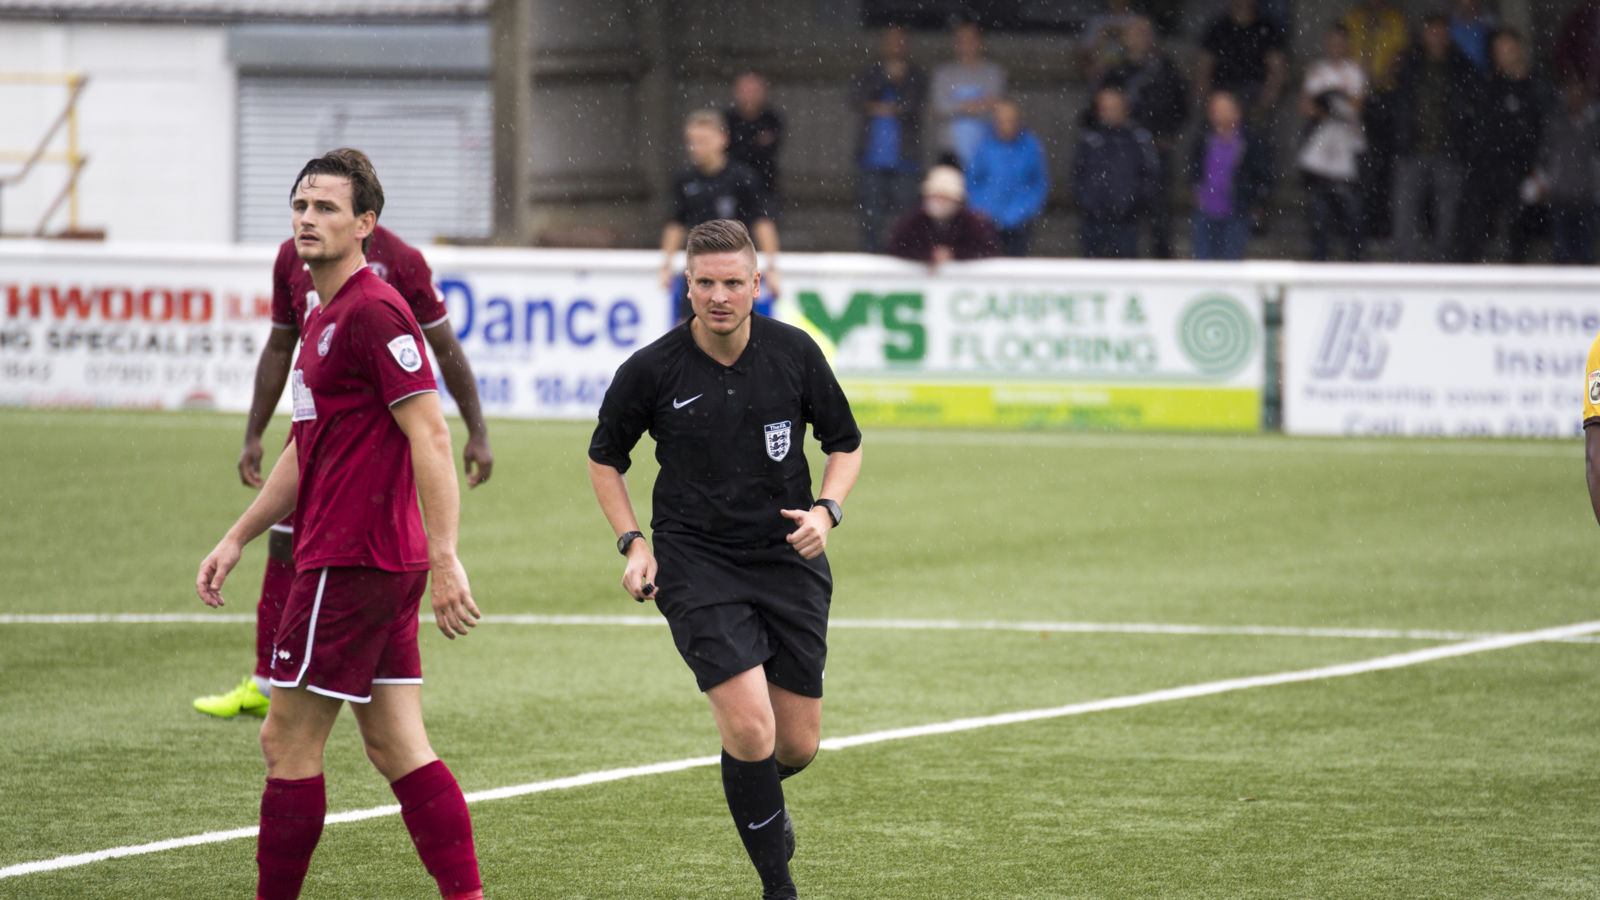 Ryan Atkin árbitro, gay Premier League Inglaterra homofobia